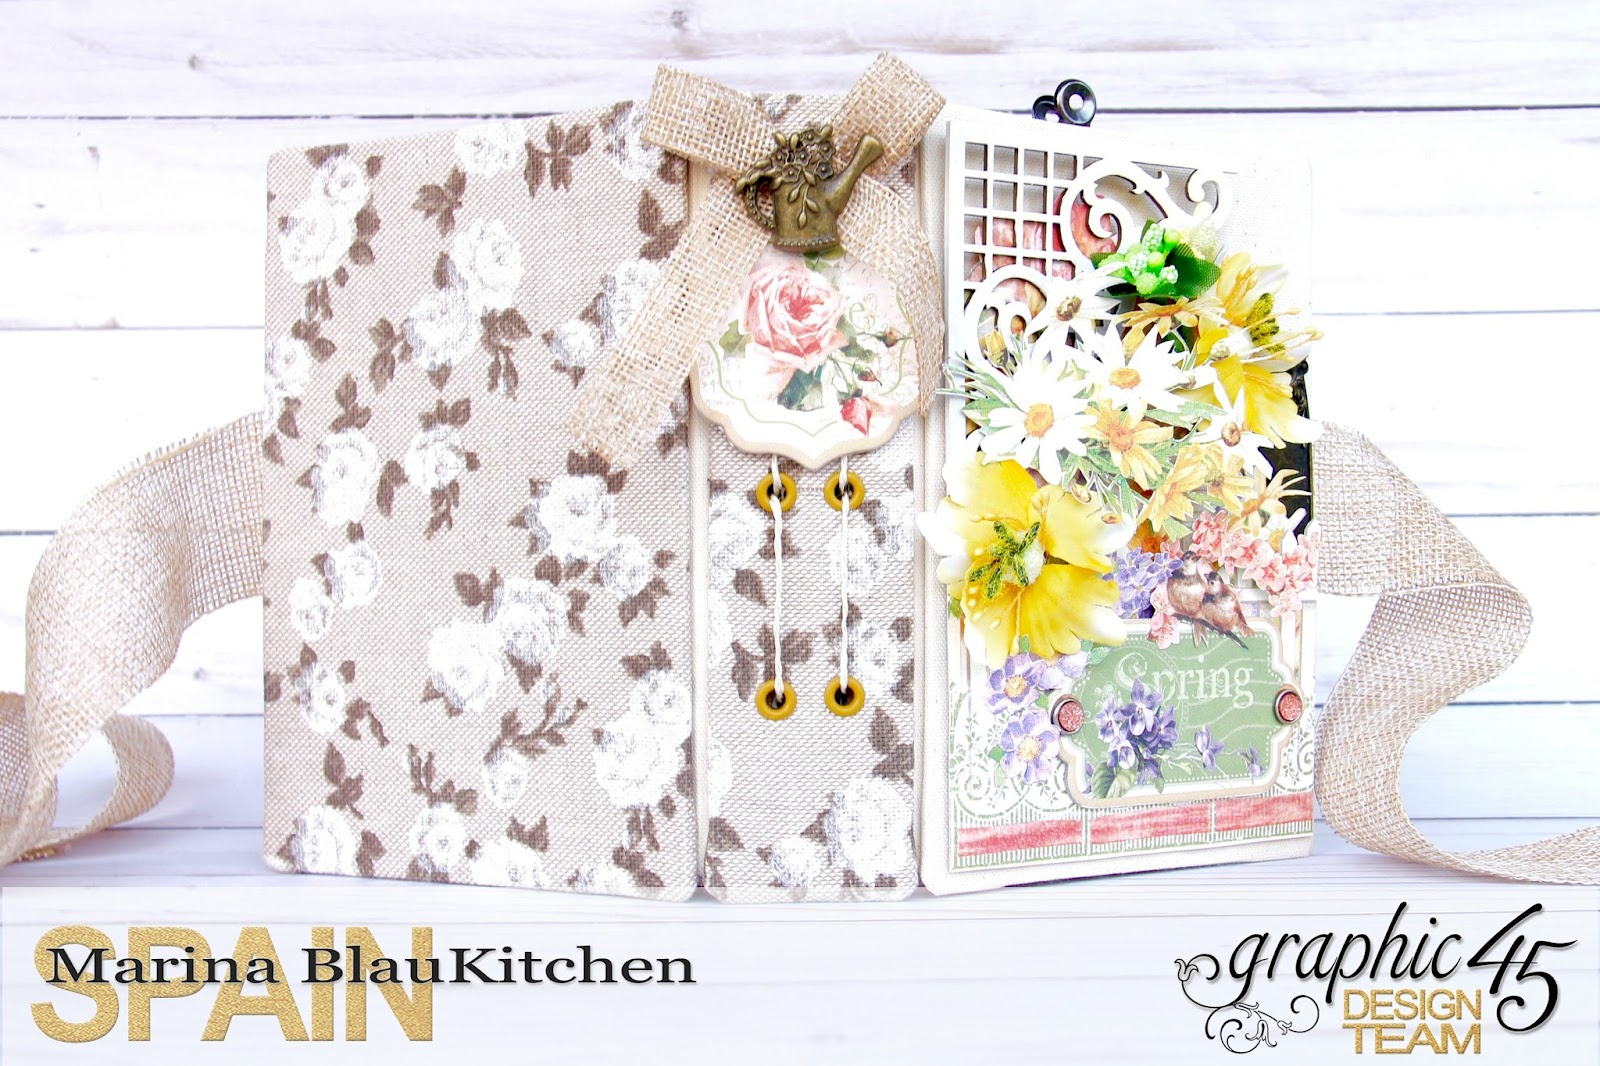 Four seasons Spring Album by Marina Blaukitchen Product by Graphic 45 photo 8.jpg